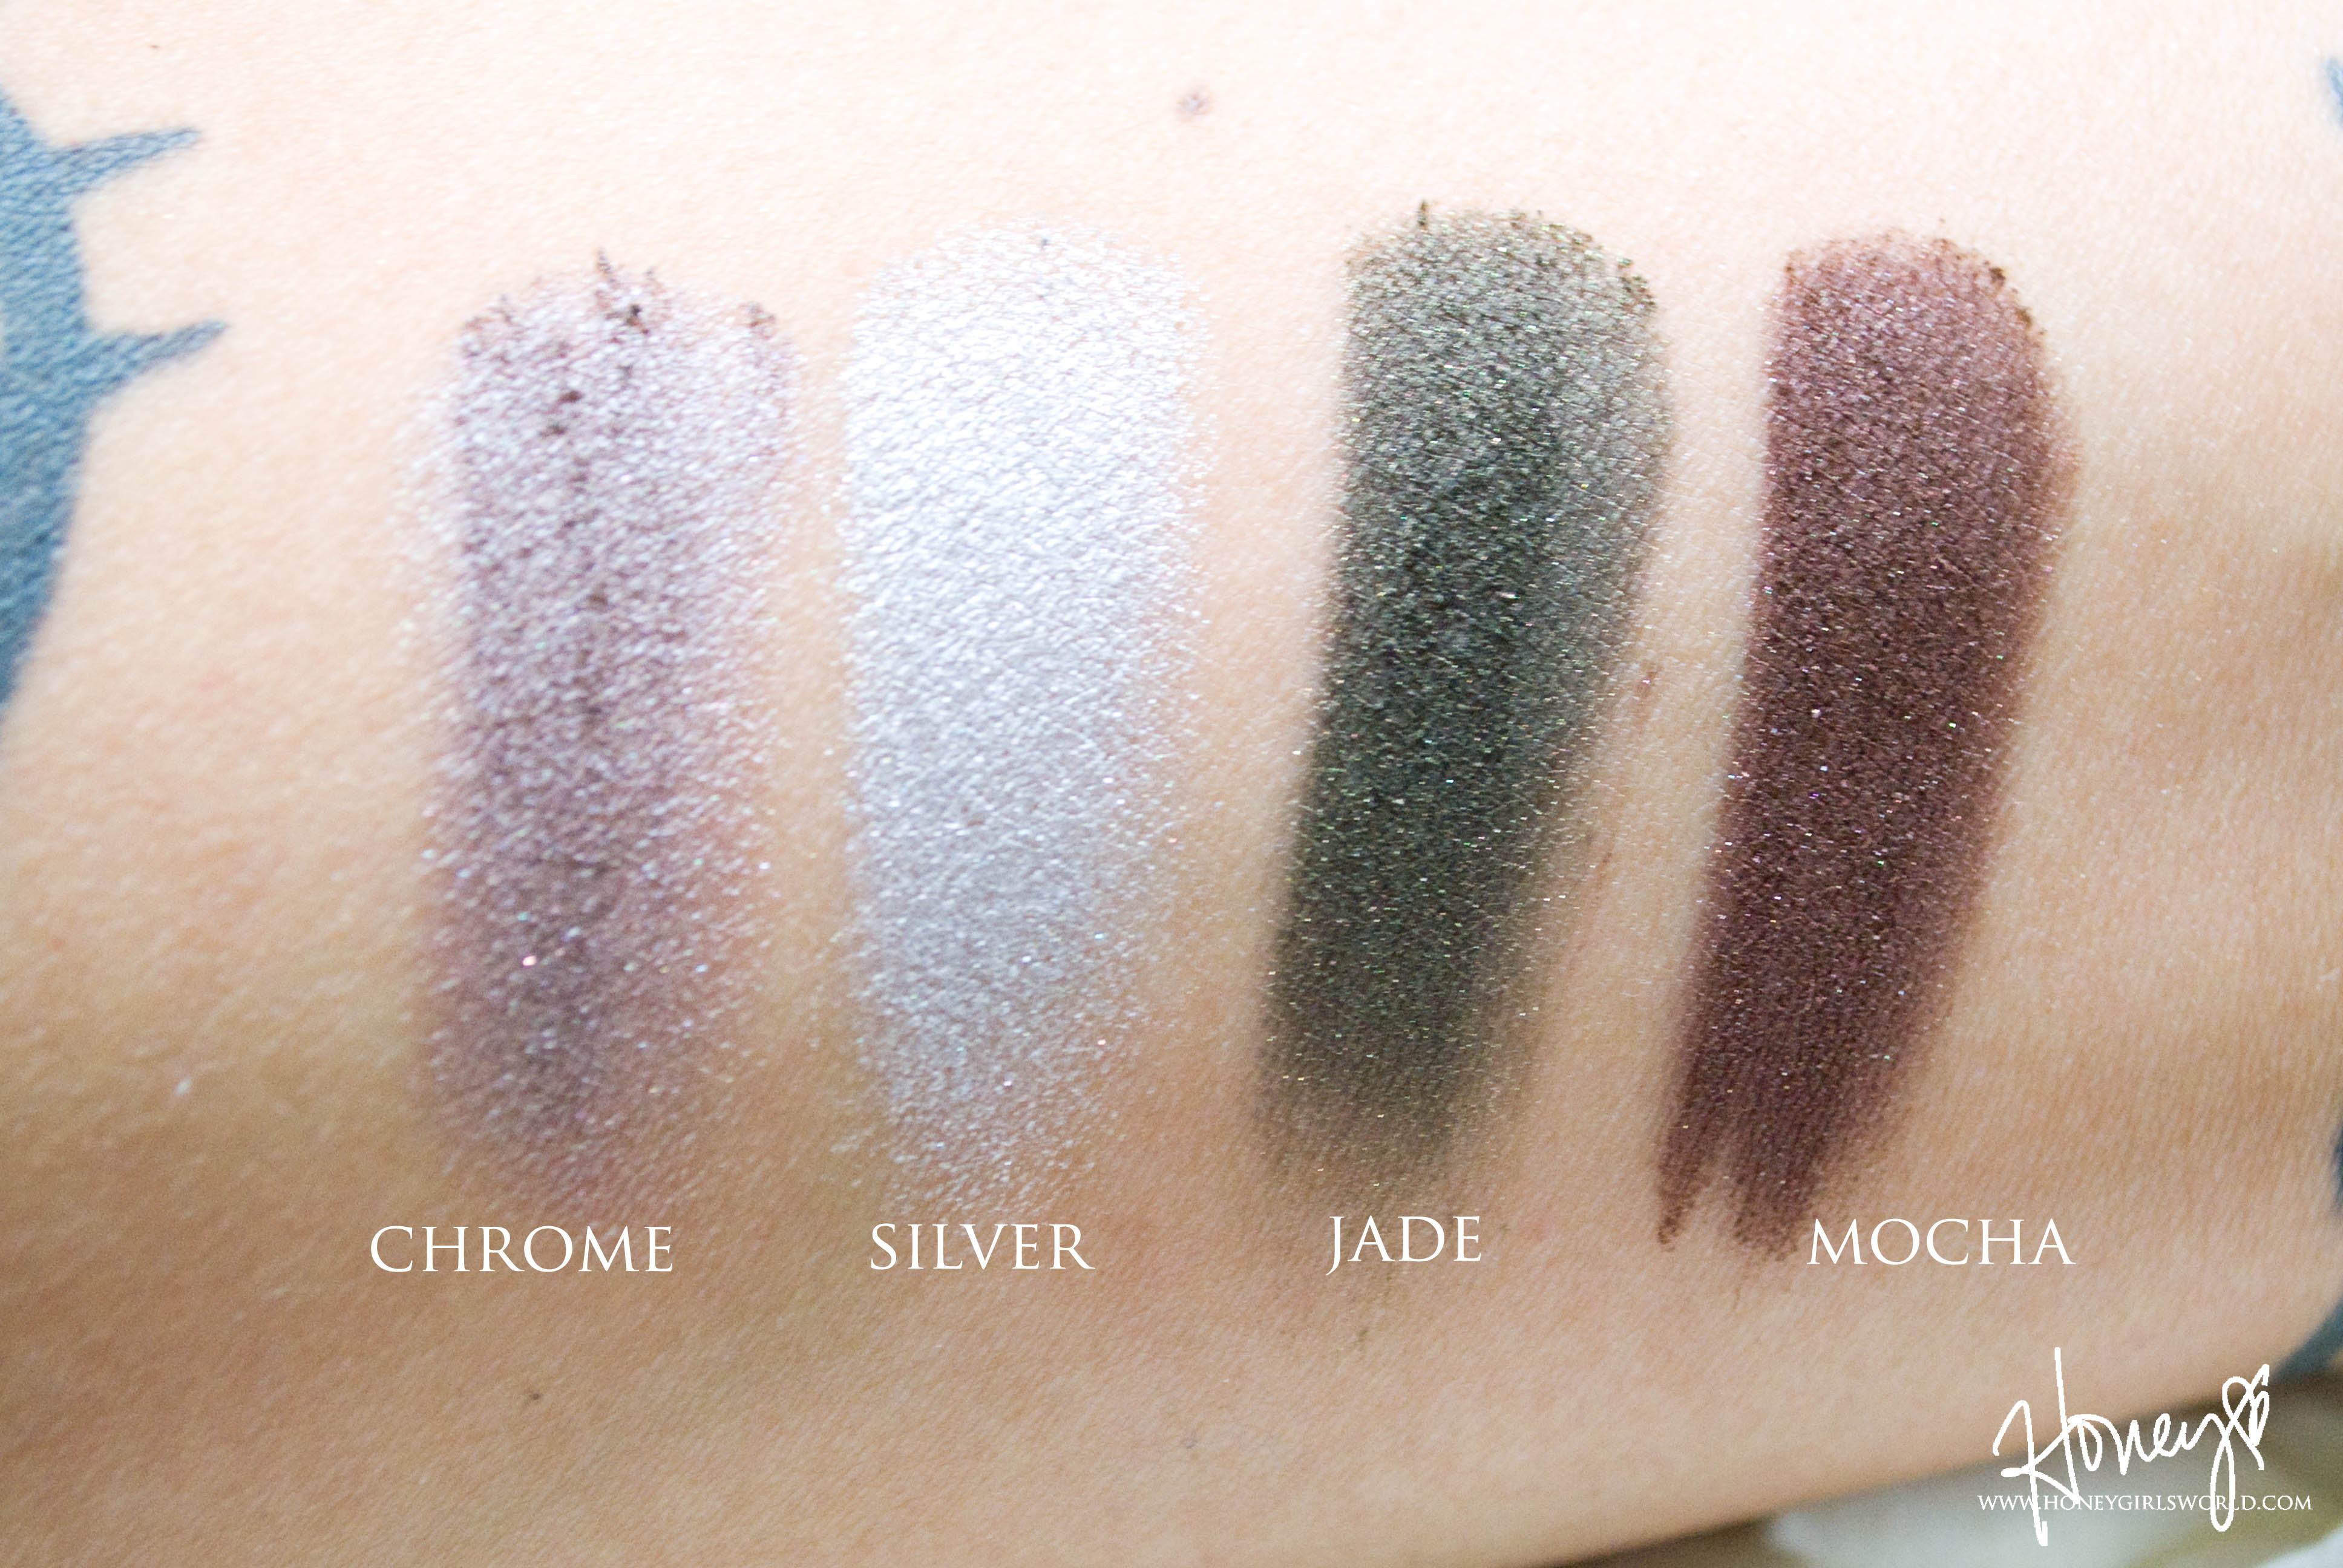 A Palette You NEED - Lorac Pro 2 Palette